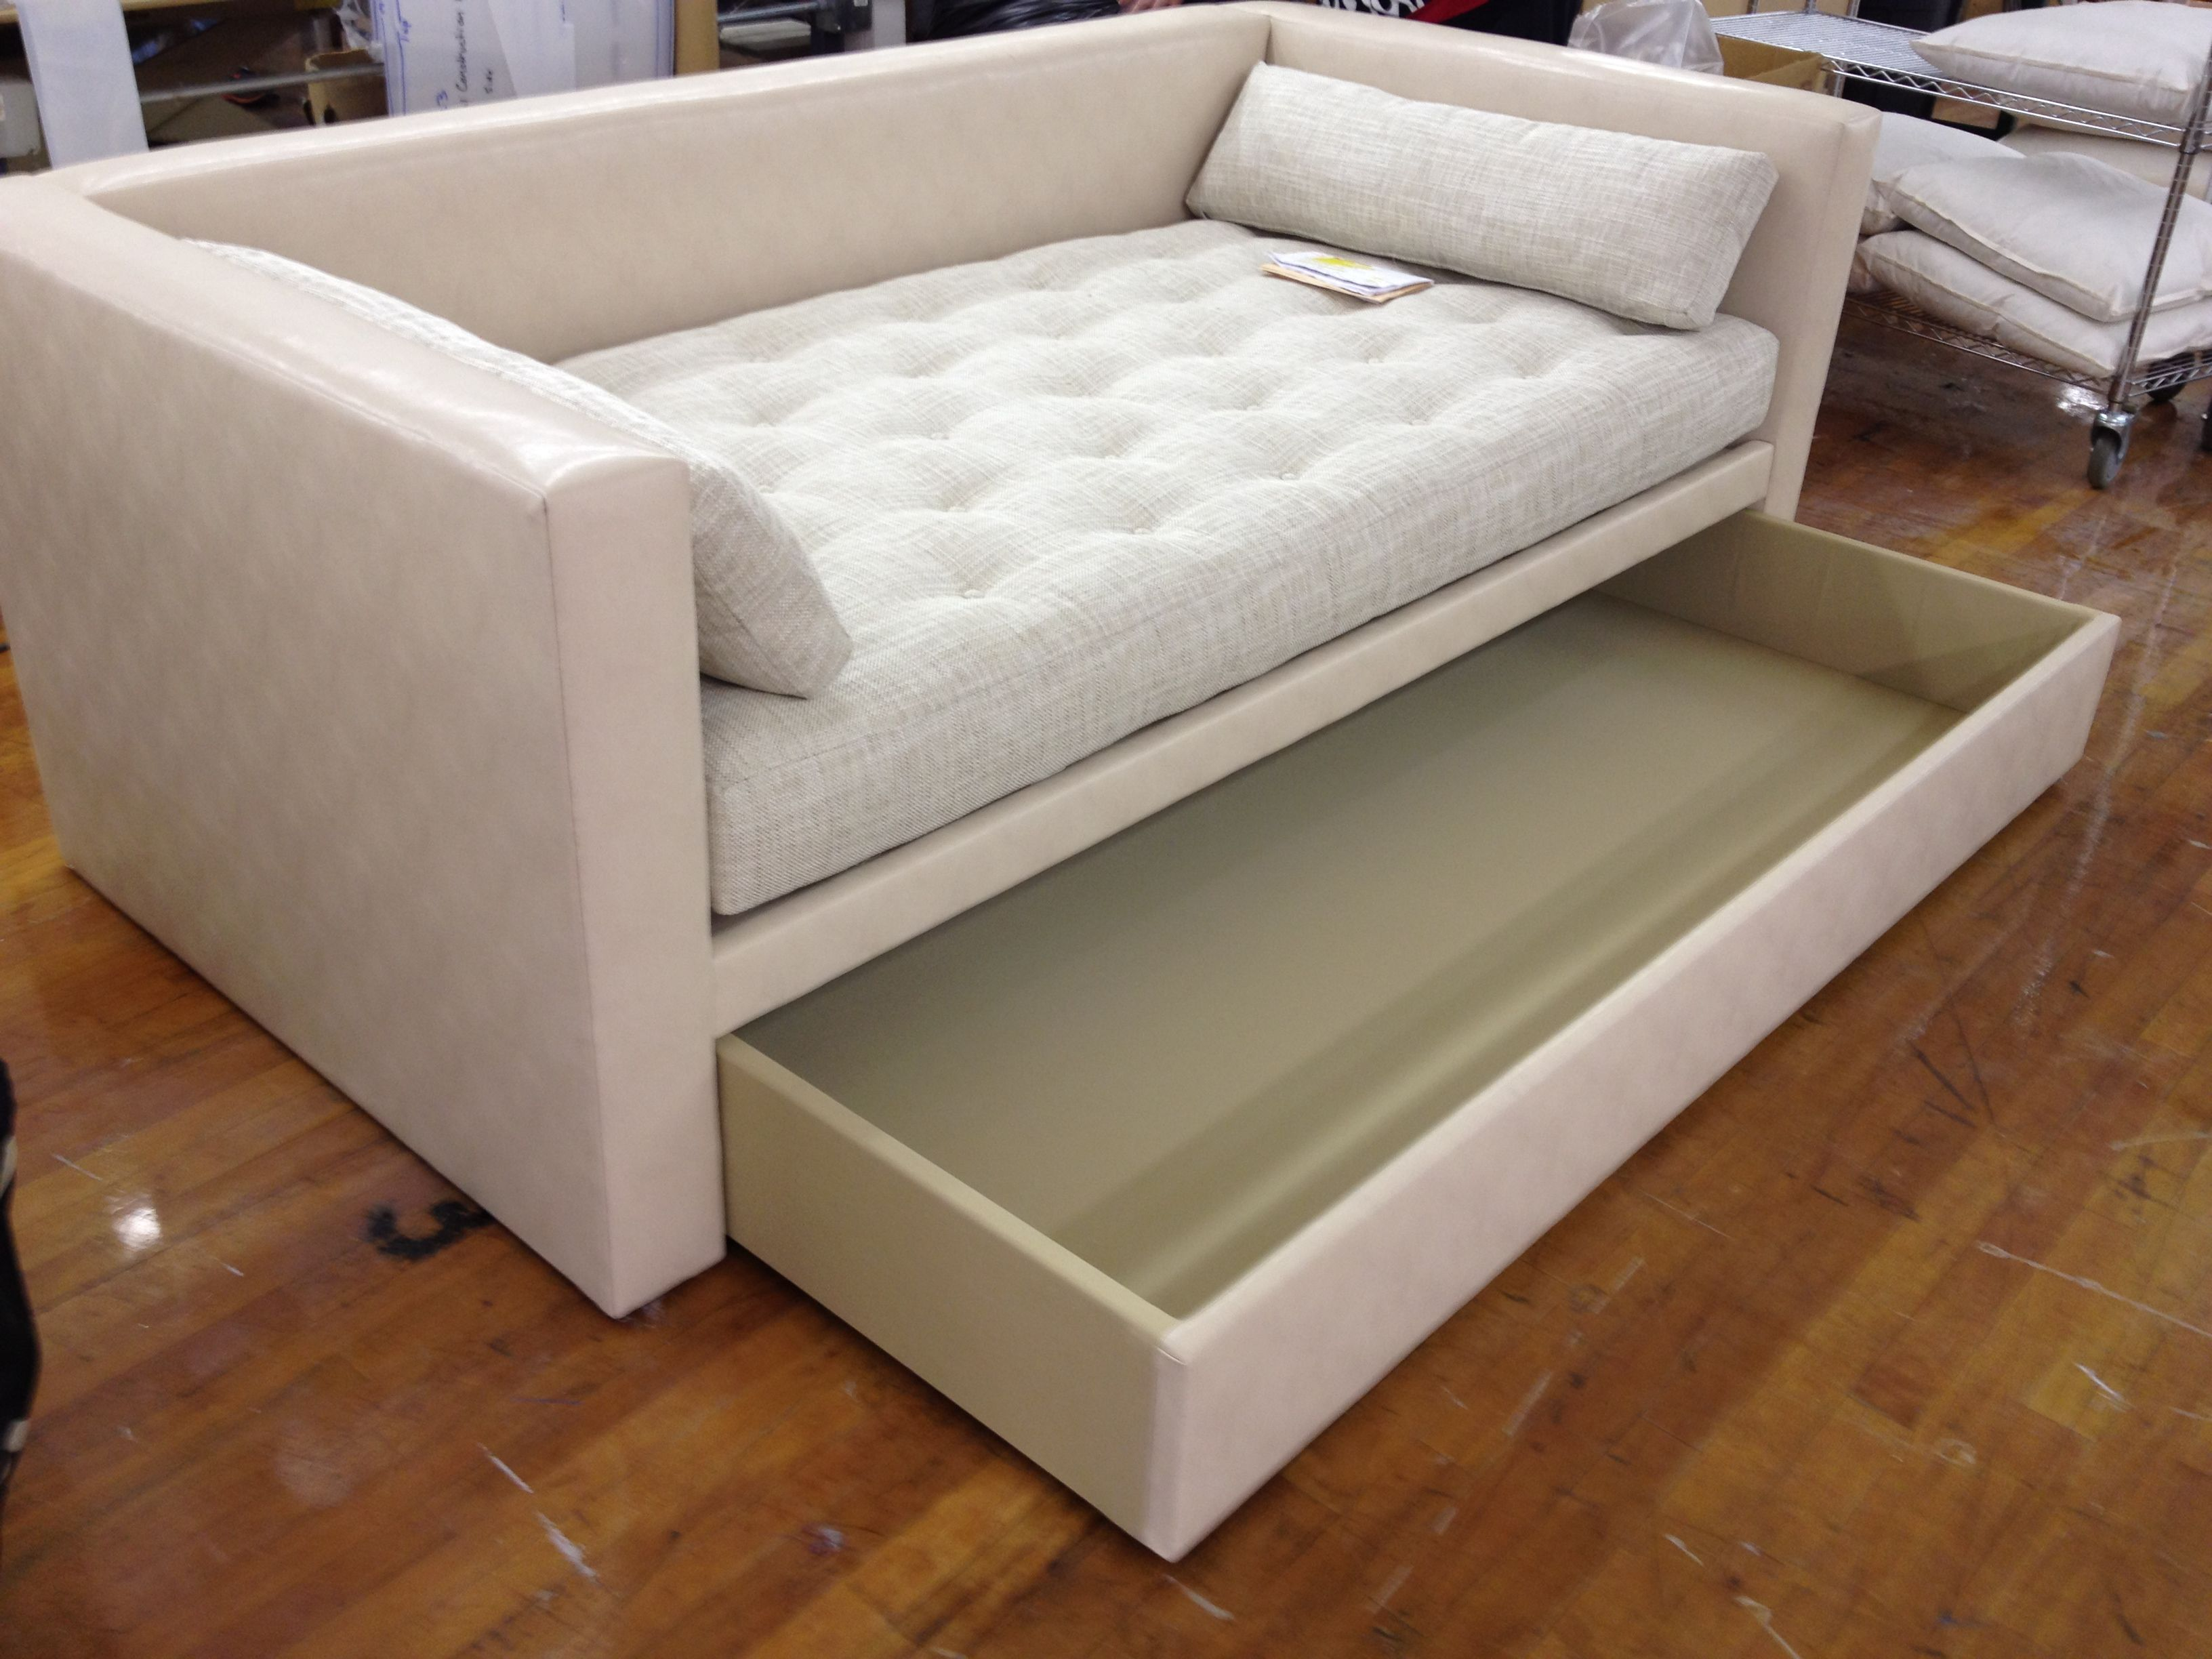 Trundle Bed Sofa Porter M2m Divan Into A Custom Sized Trundle Bed With A Button Tufted